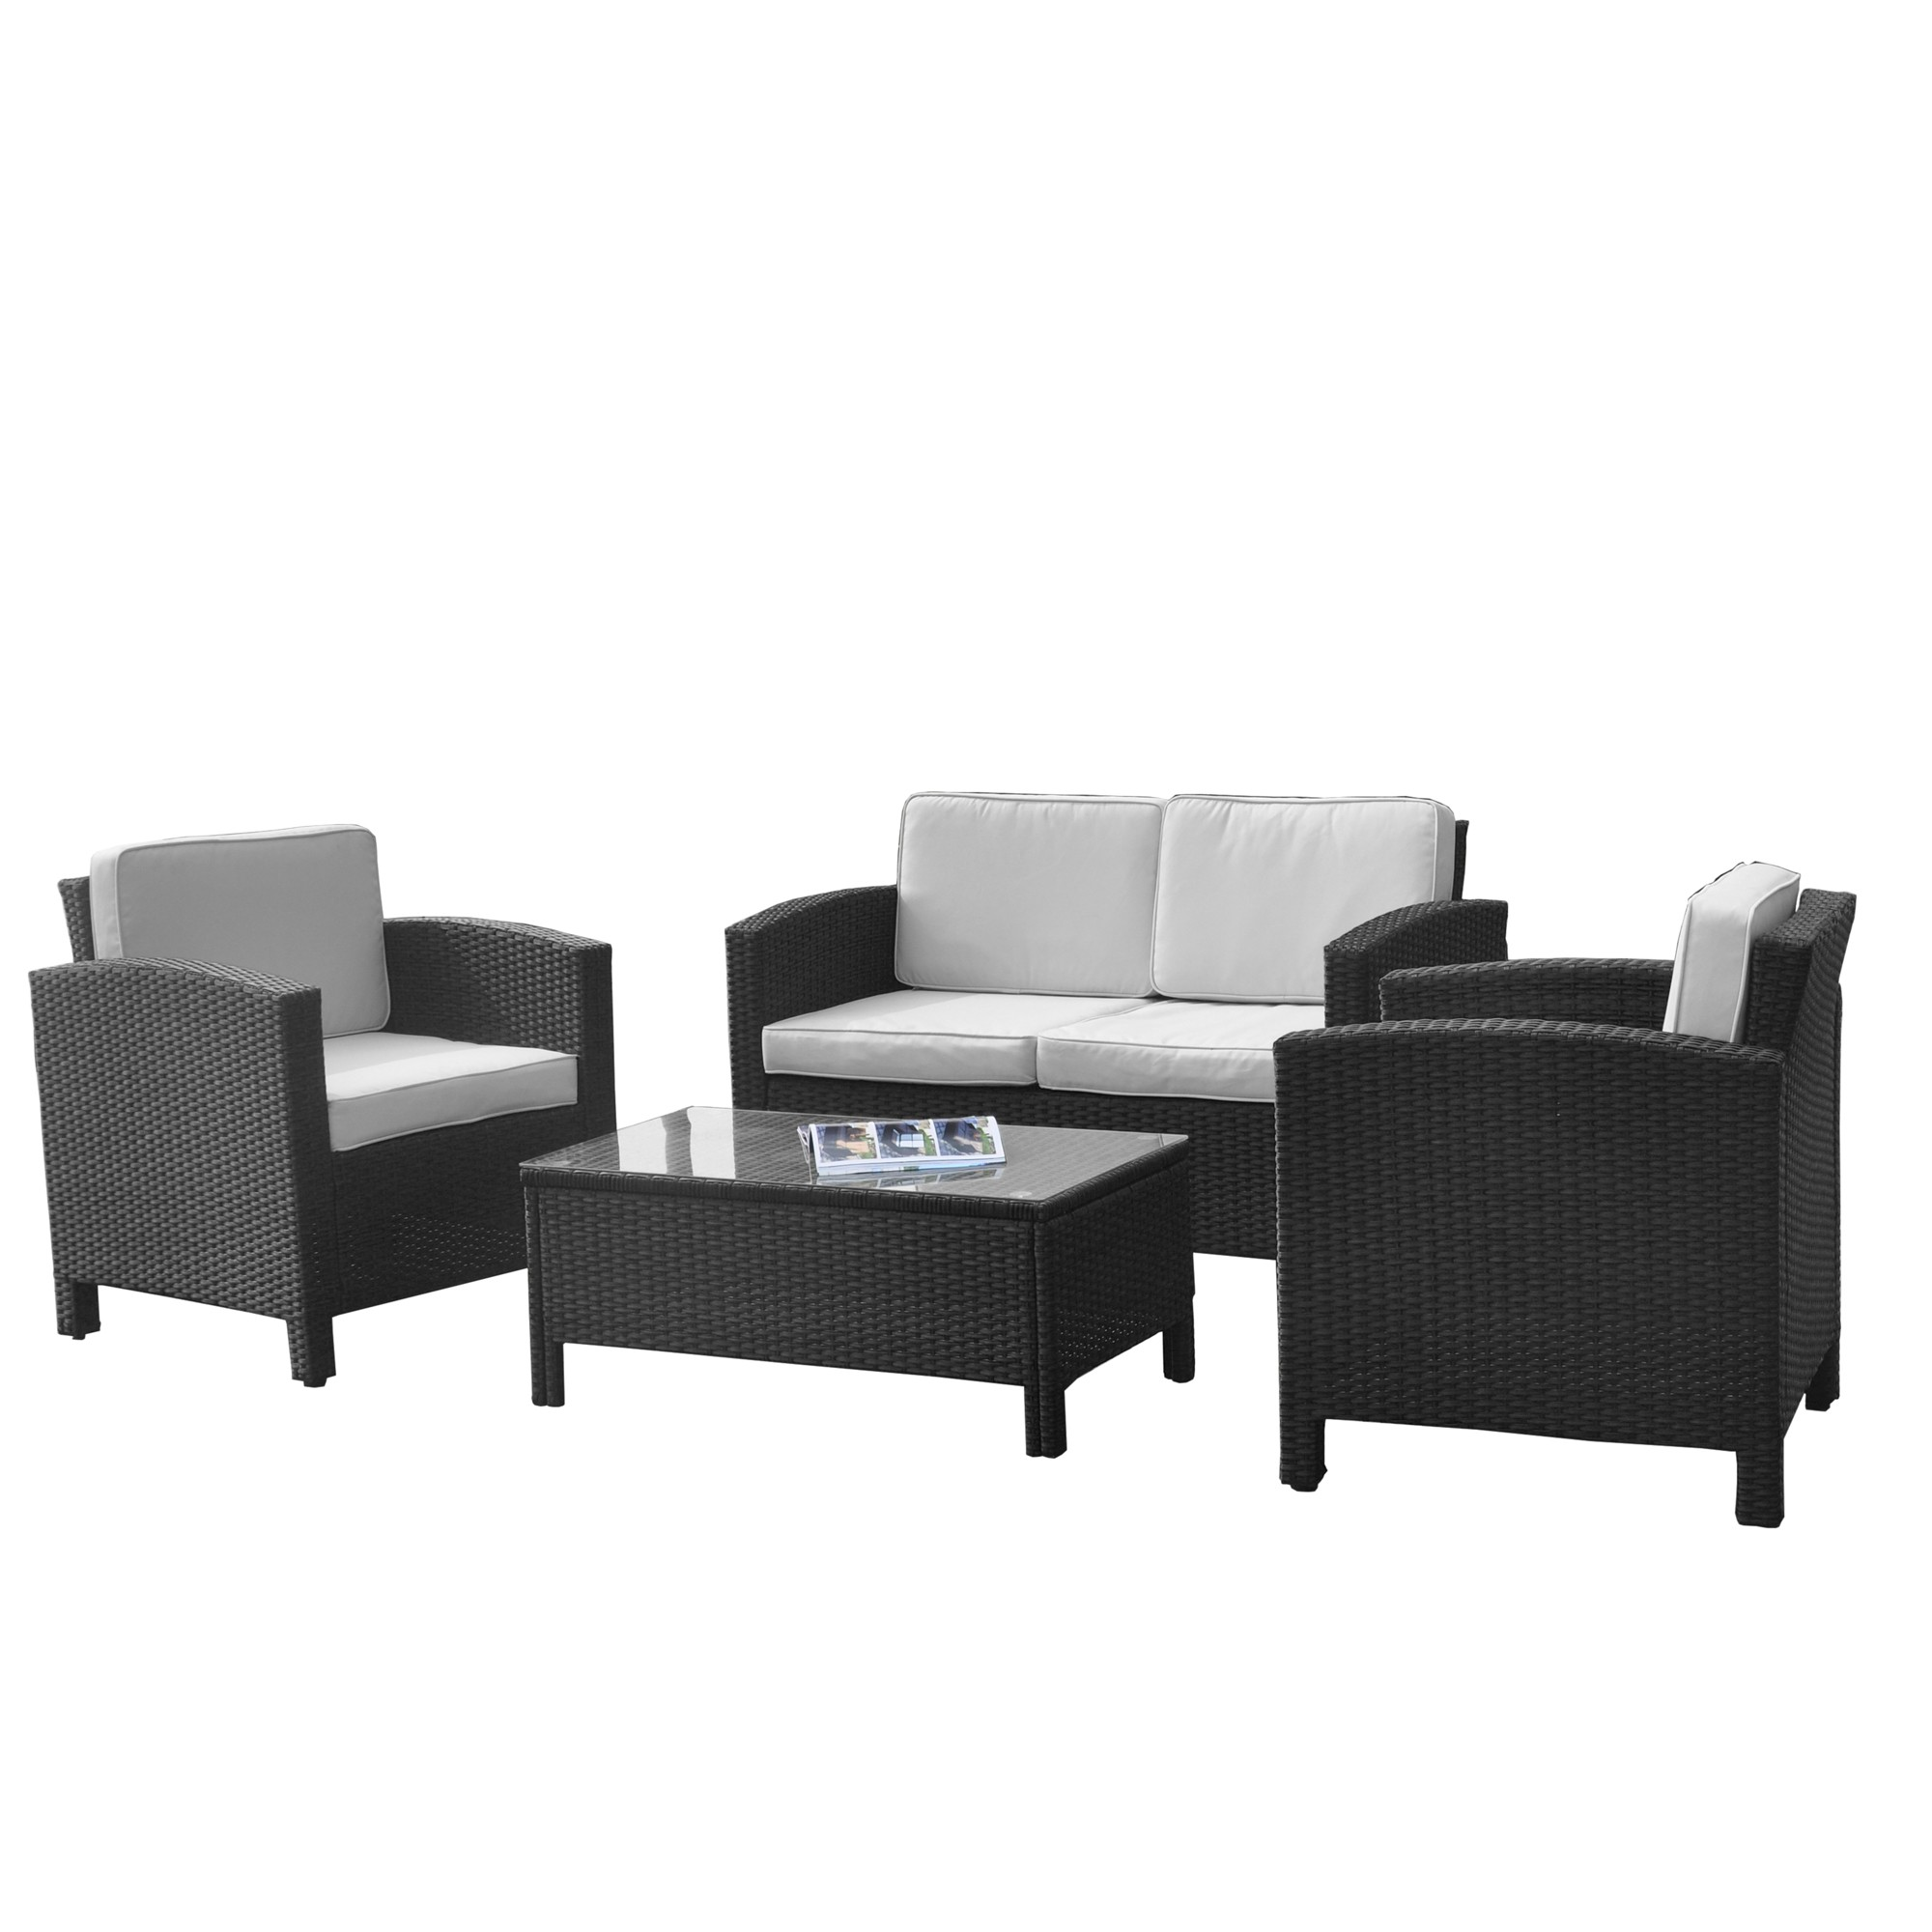 lounge set balkon g nstig balkon lounge set kaufen. Black Bedroom Furniture Sets. Home Design Ideas